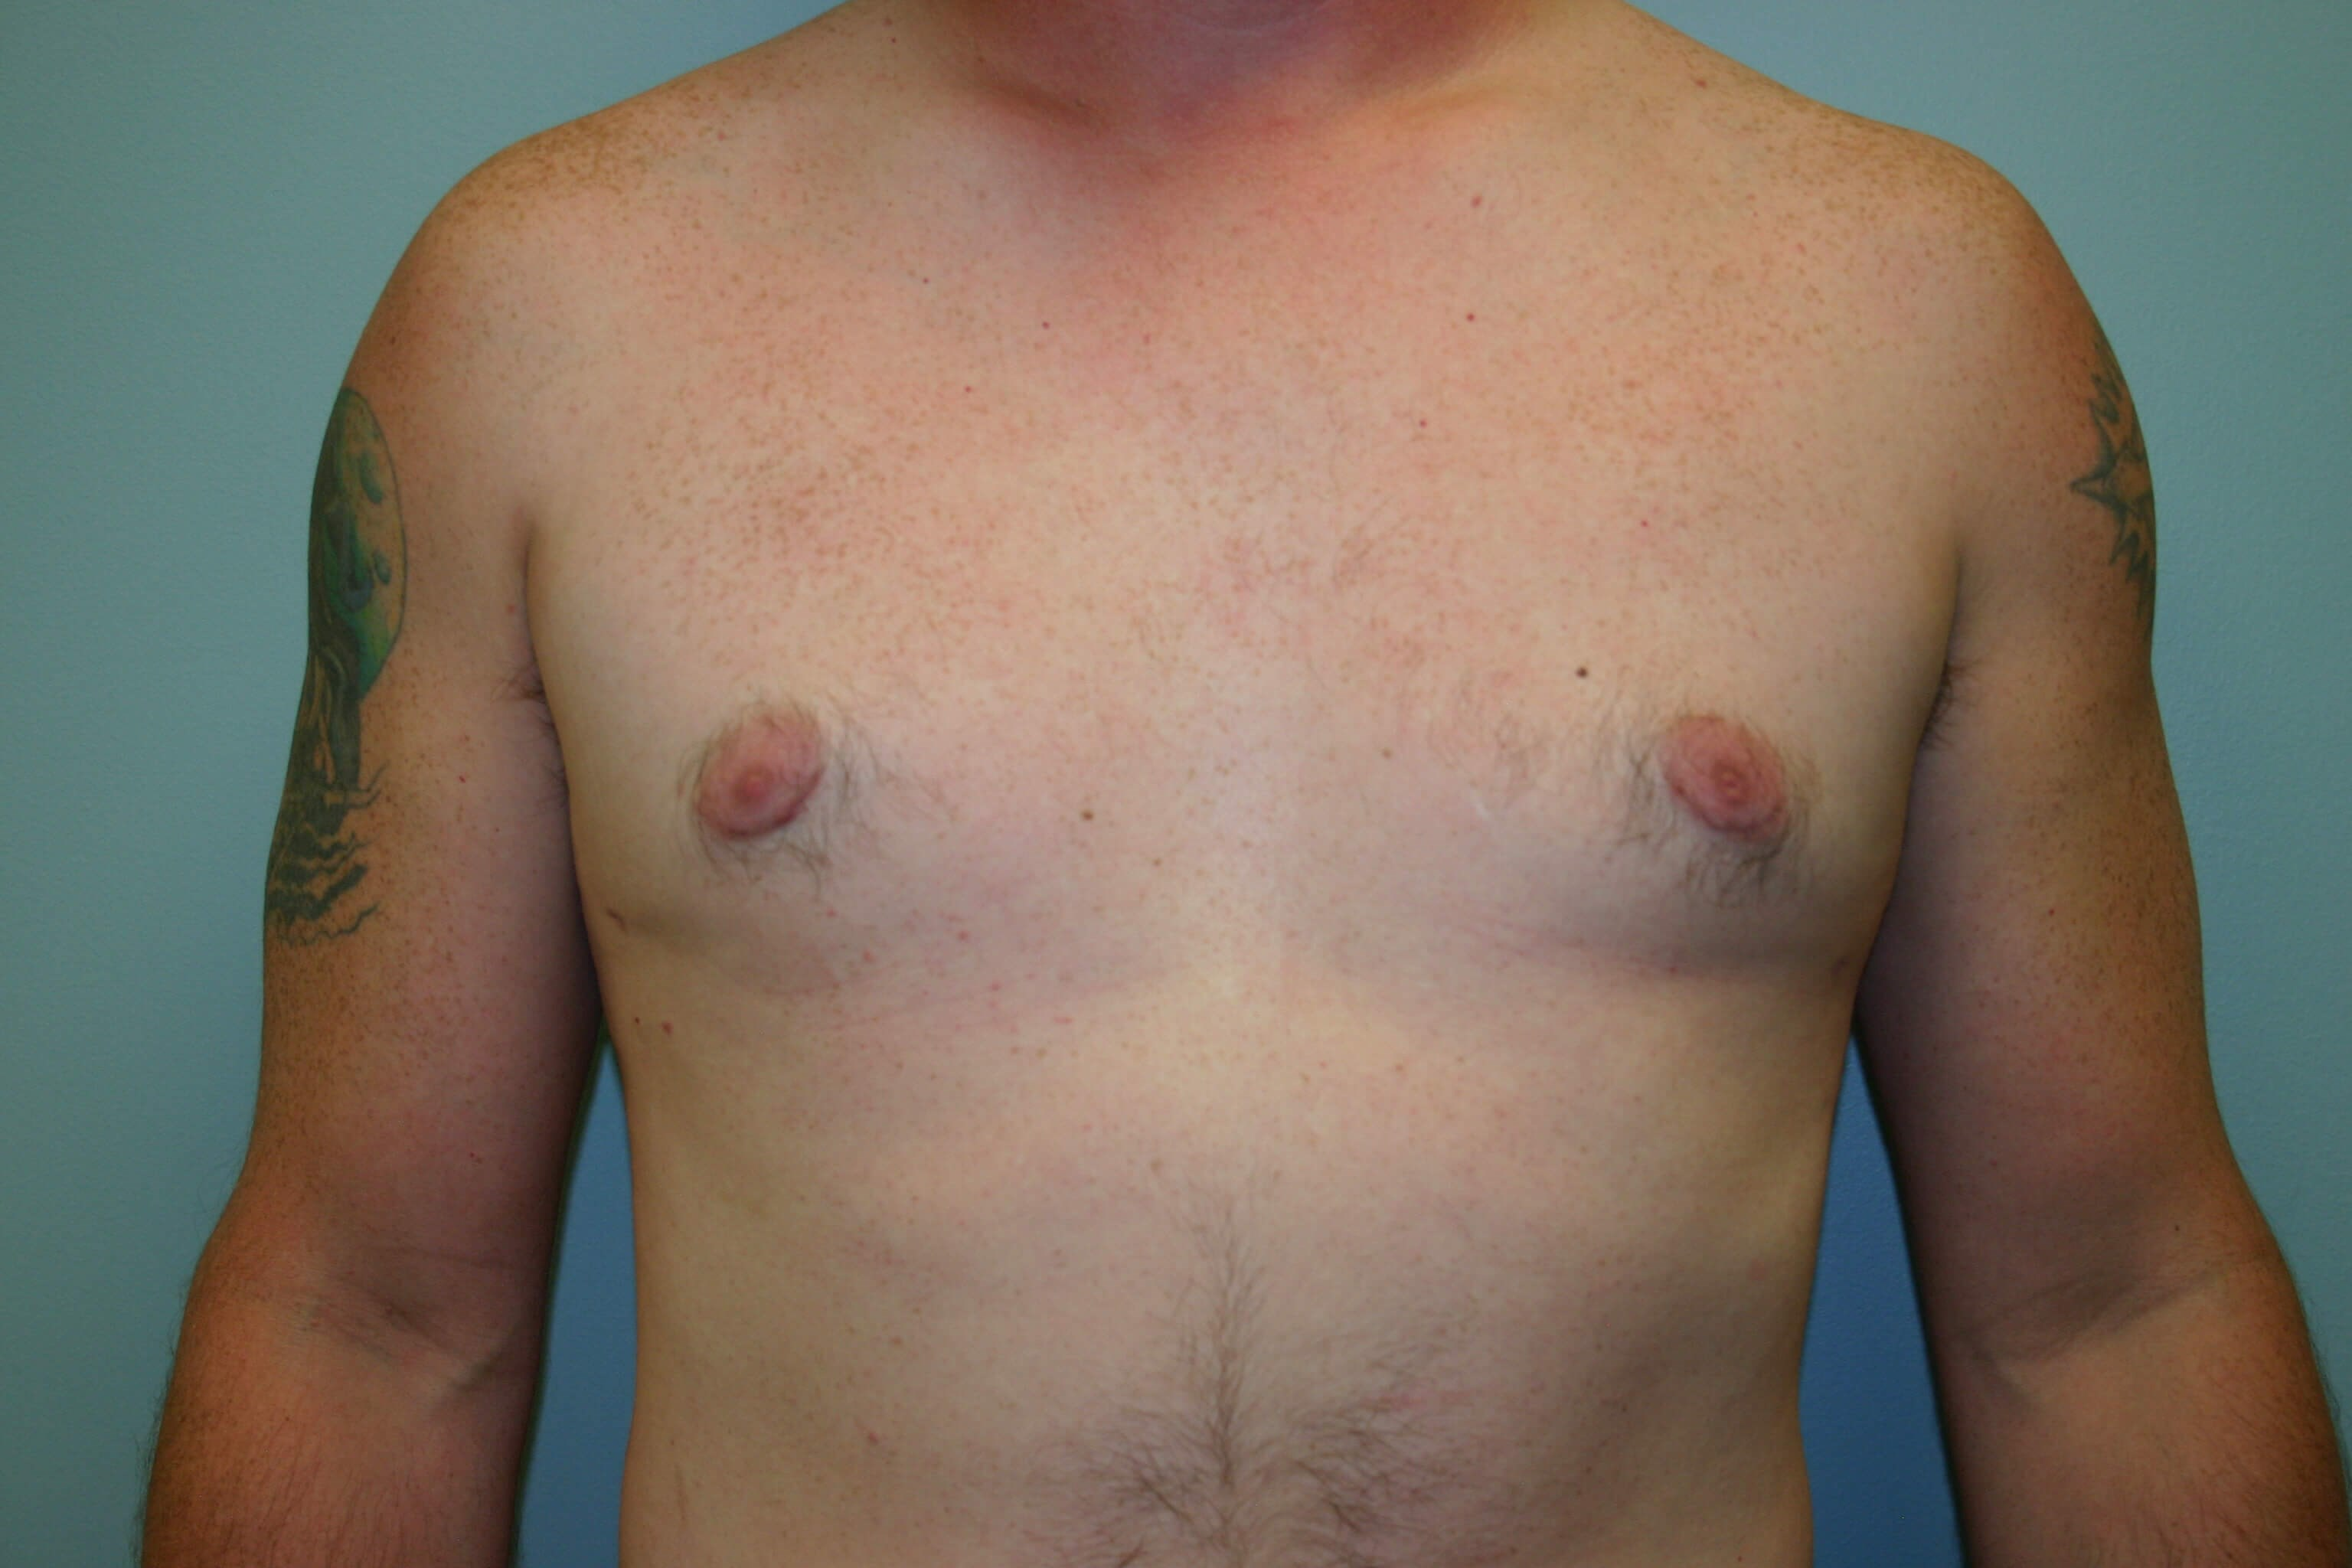 6 Months Post-op Gynecomastia After